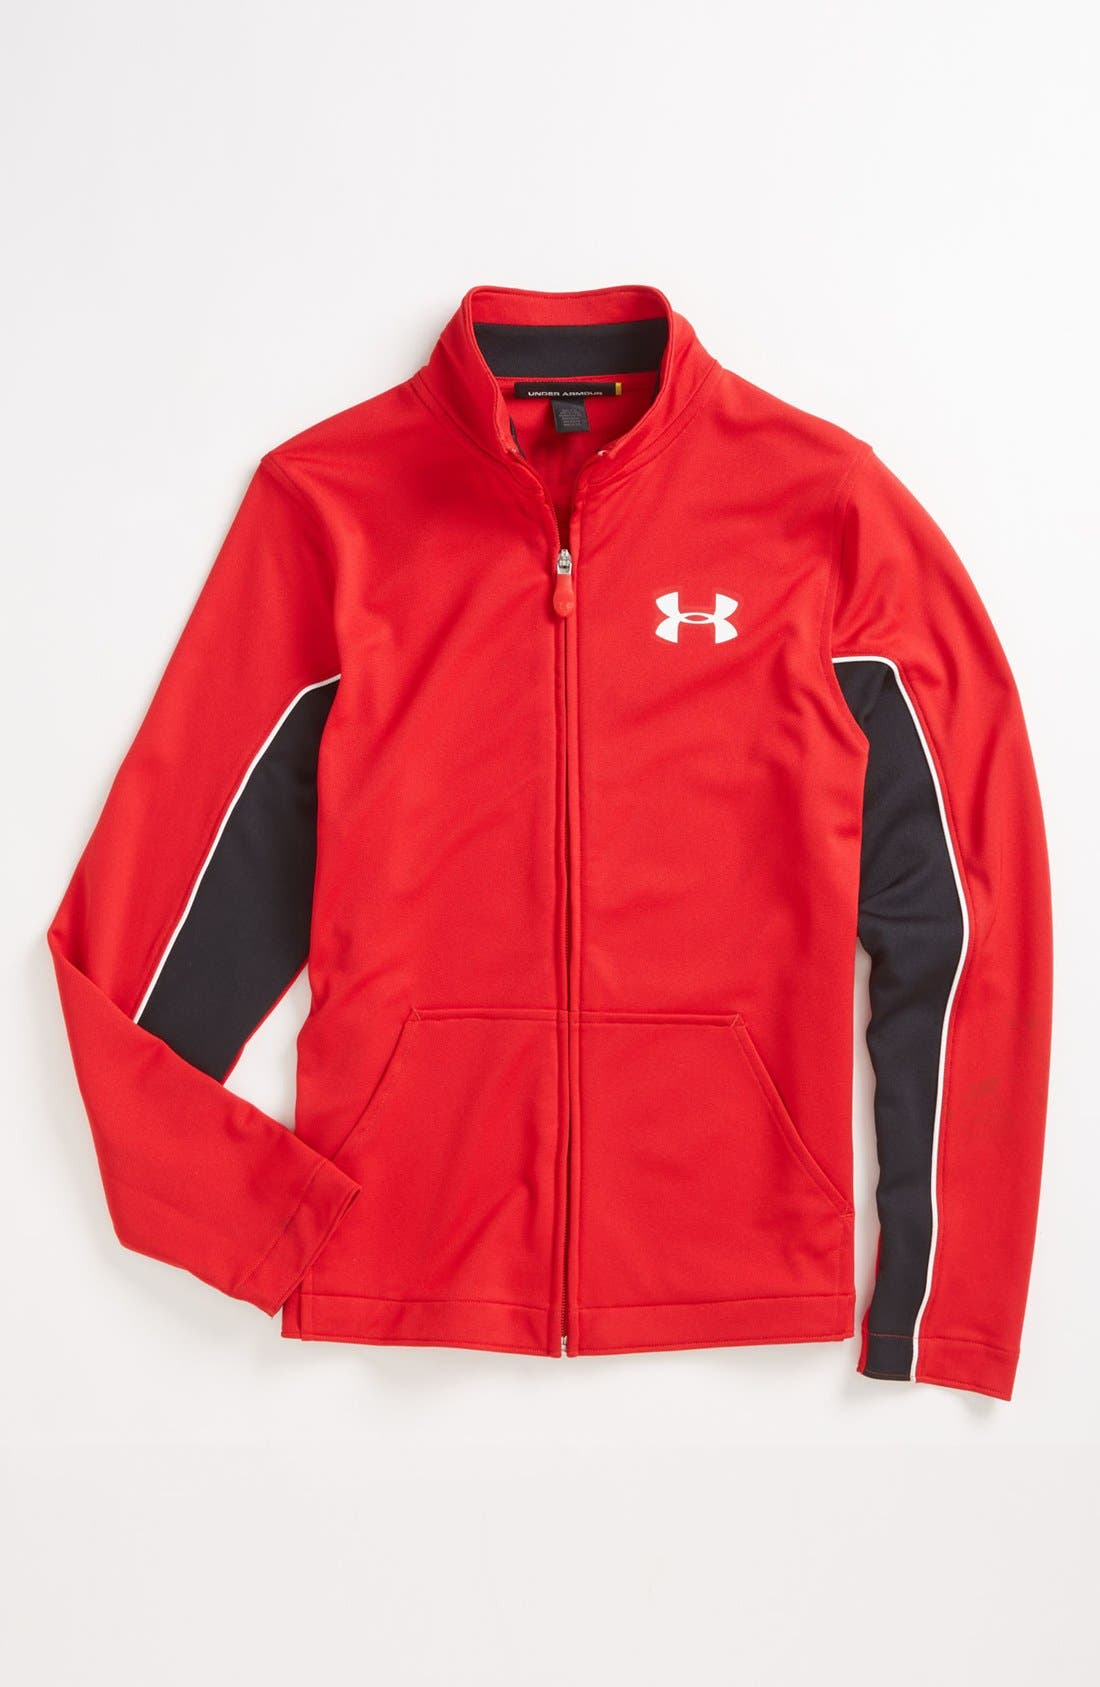 Main Image - Under Armour 'Accelerate' Warm-Up Jacket (Big Boys)